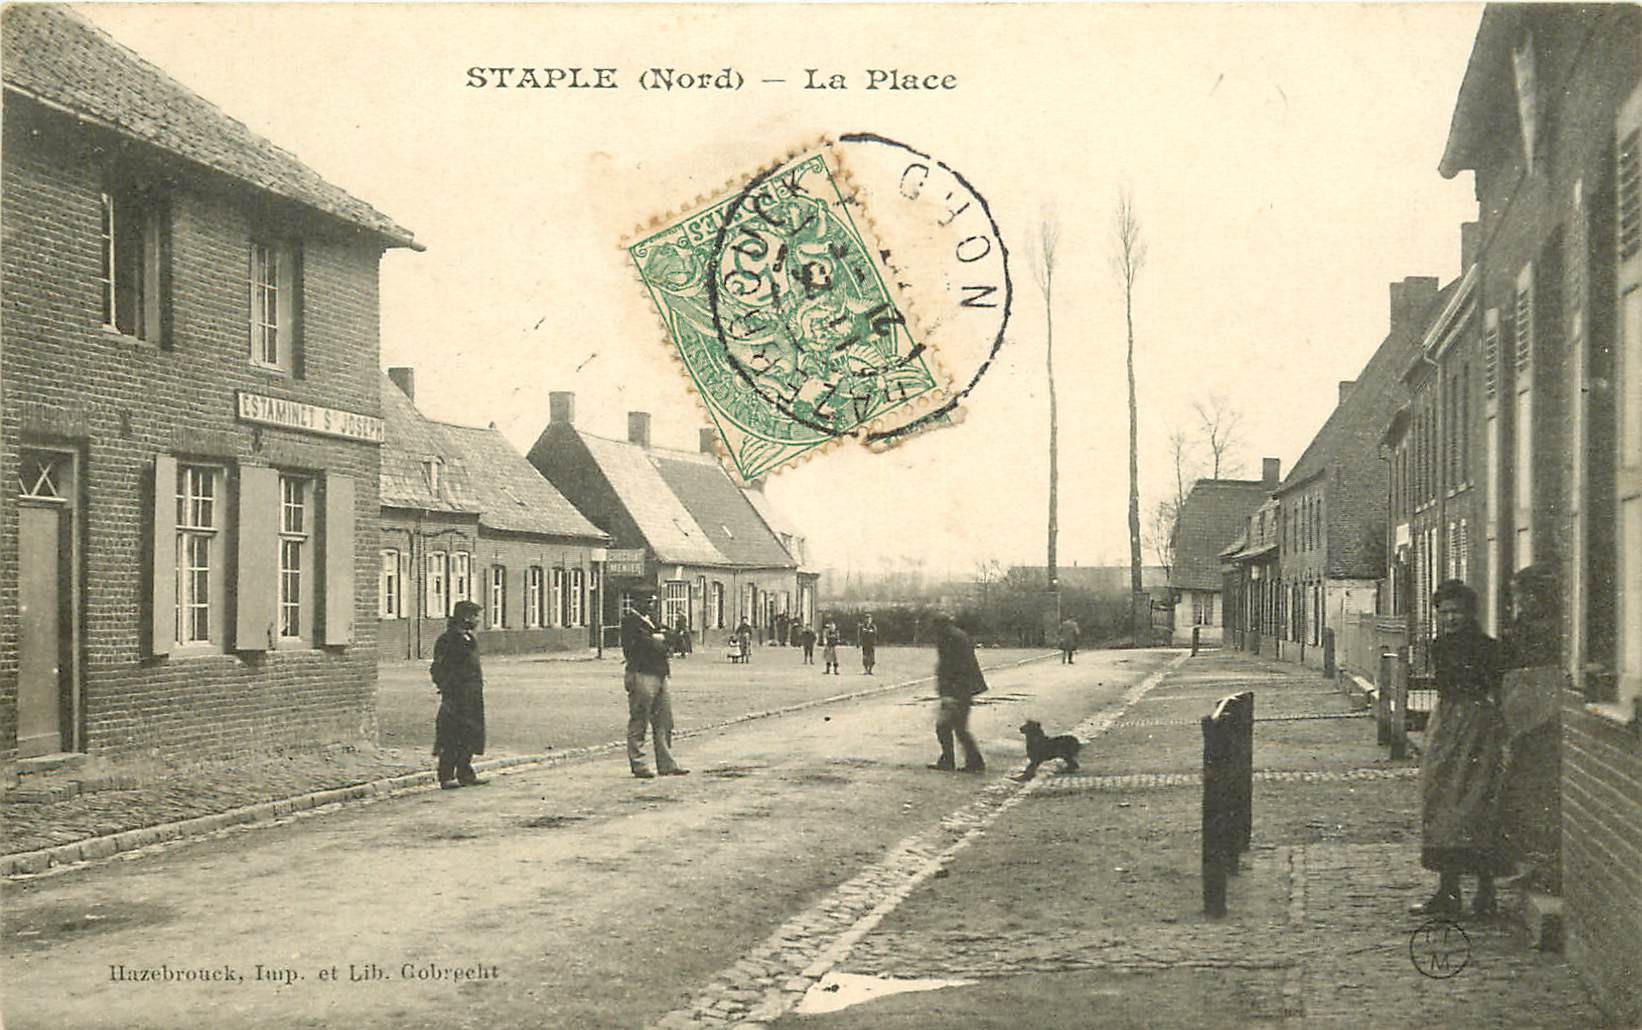 WW 59 STAPLE. Estaminet Saint-Joseph sur la Place 1907